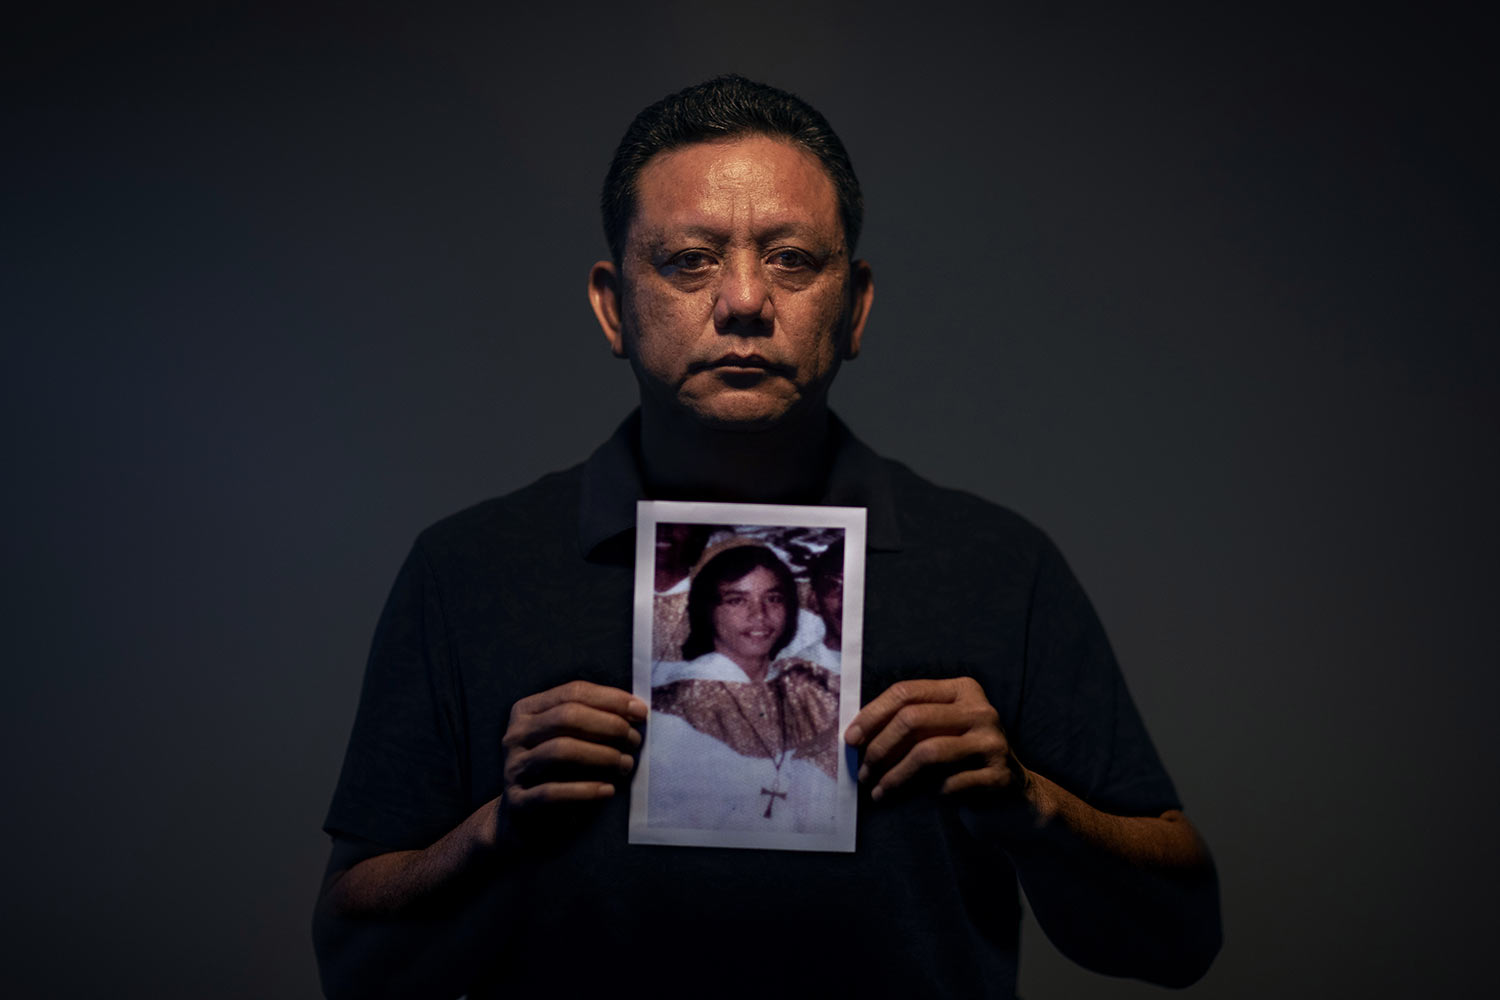 Roland Sondia, 57, holds a photo of himself when he was about 15 years old. (AP Photo/David Goldman)